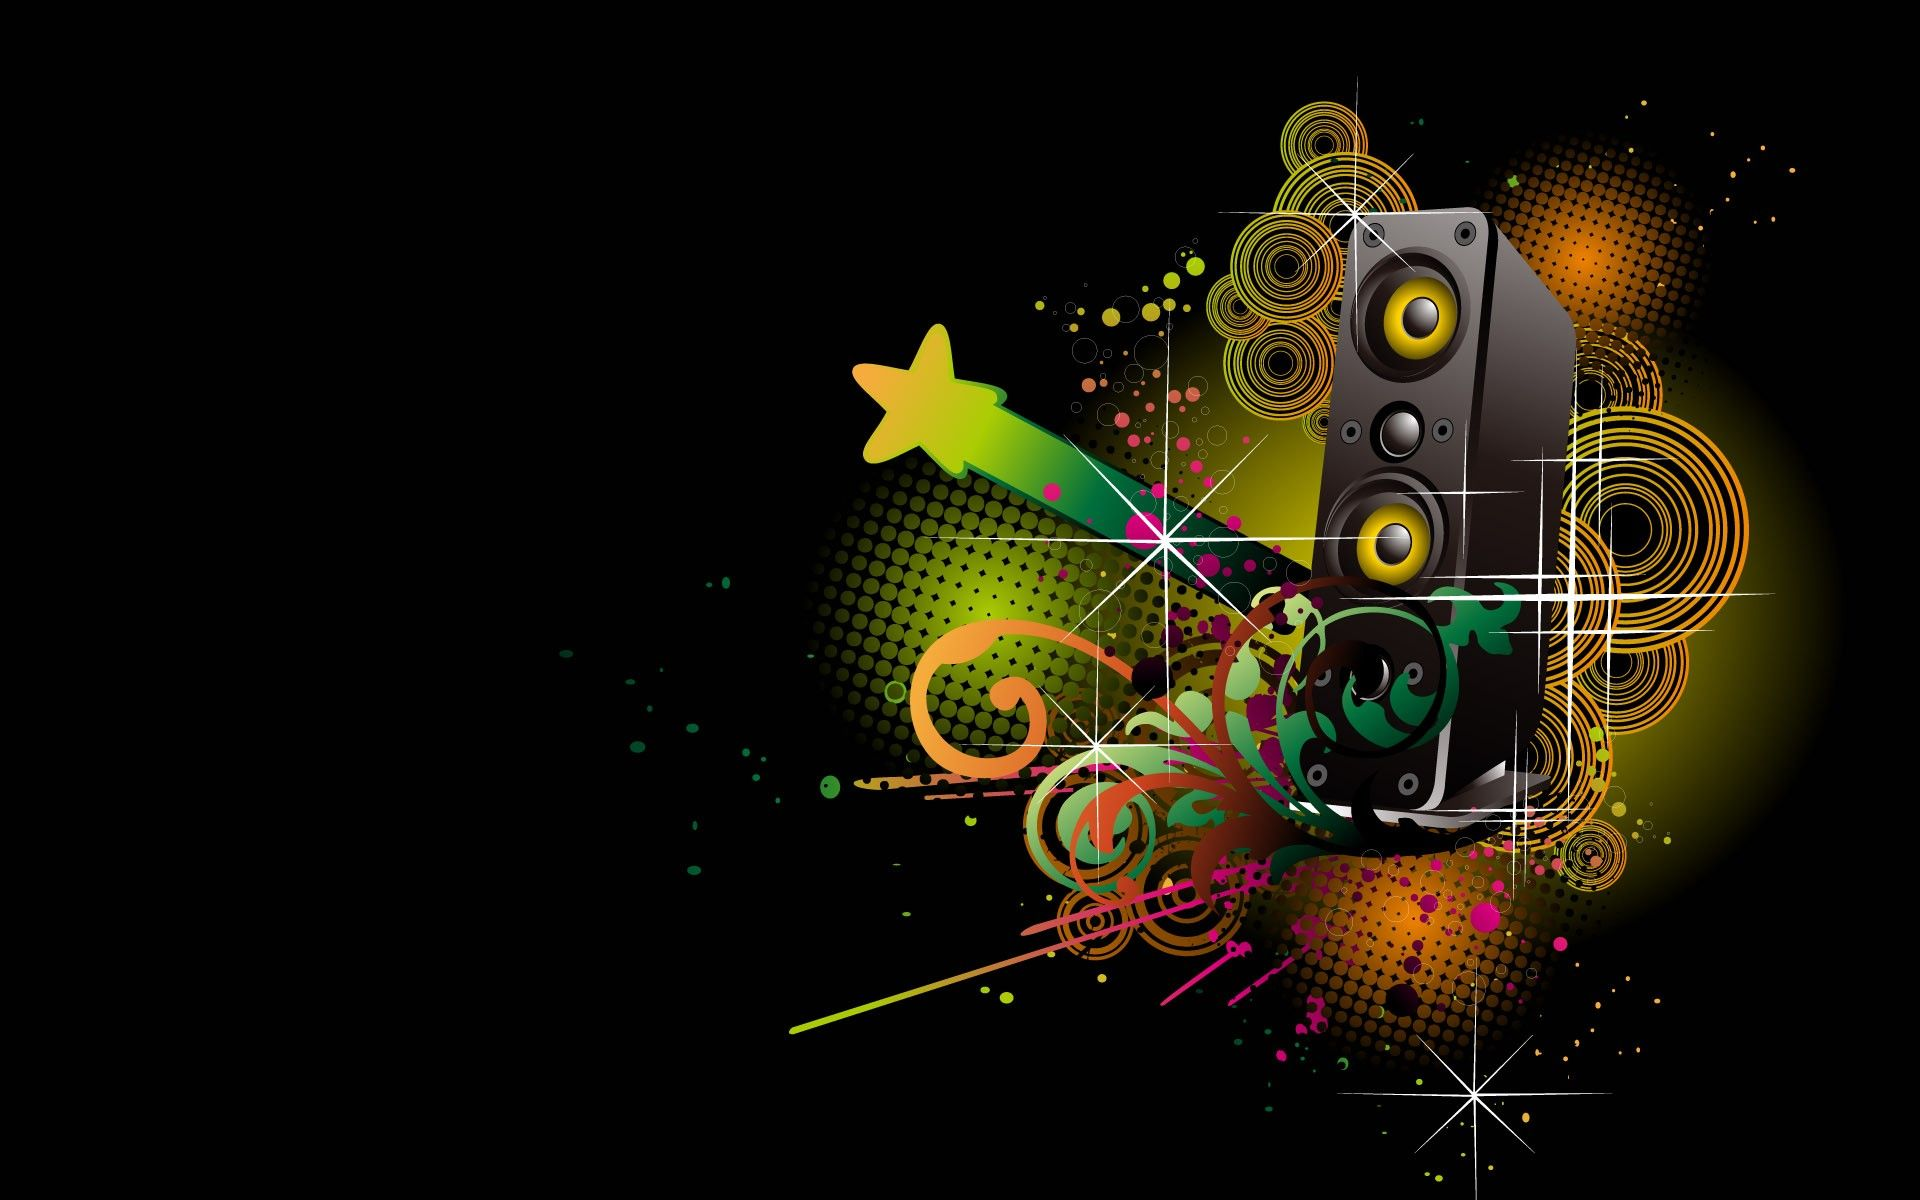 abstract music wallpapers wallpapers | anna sleeping buty